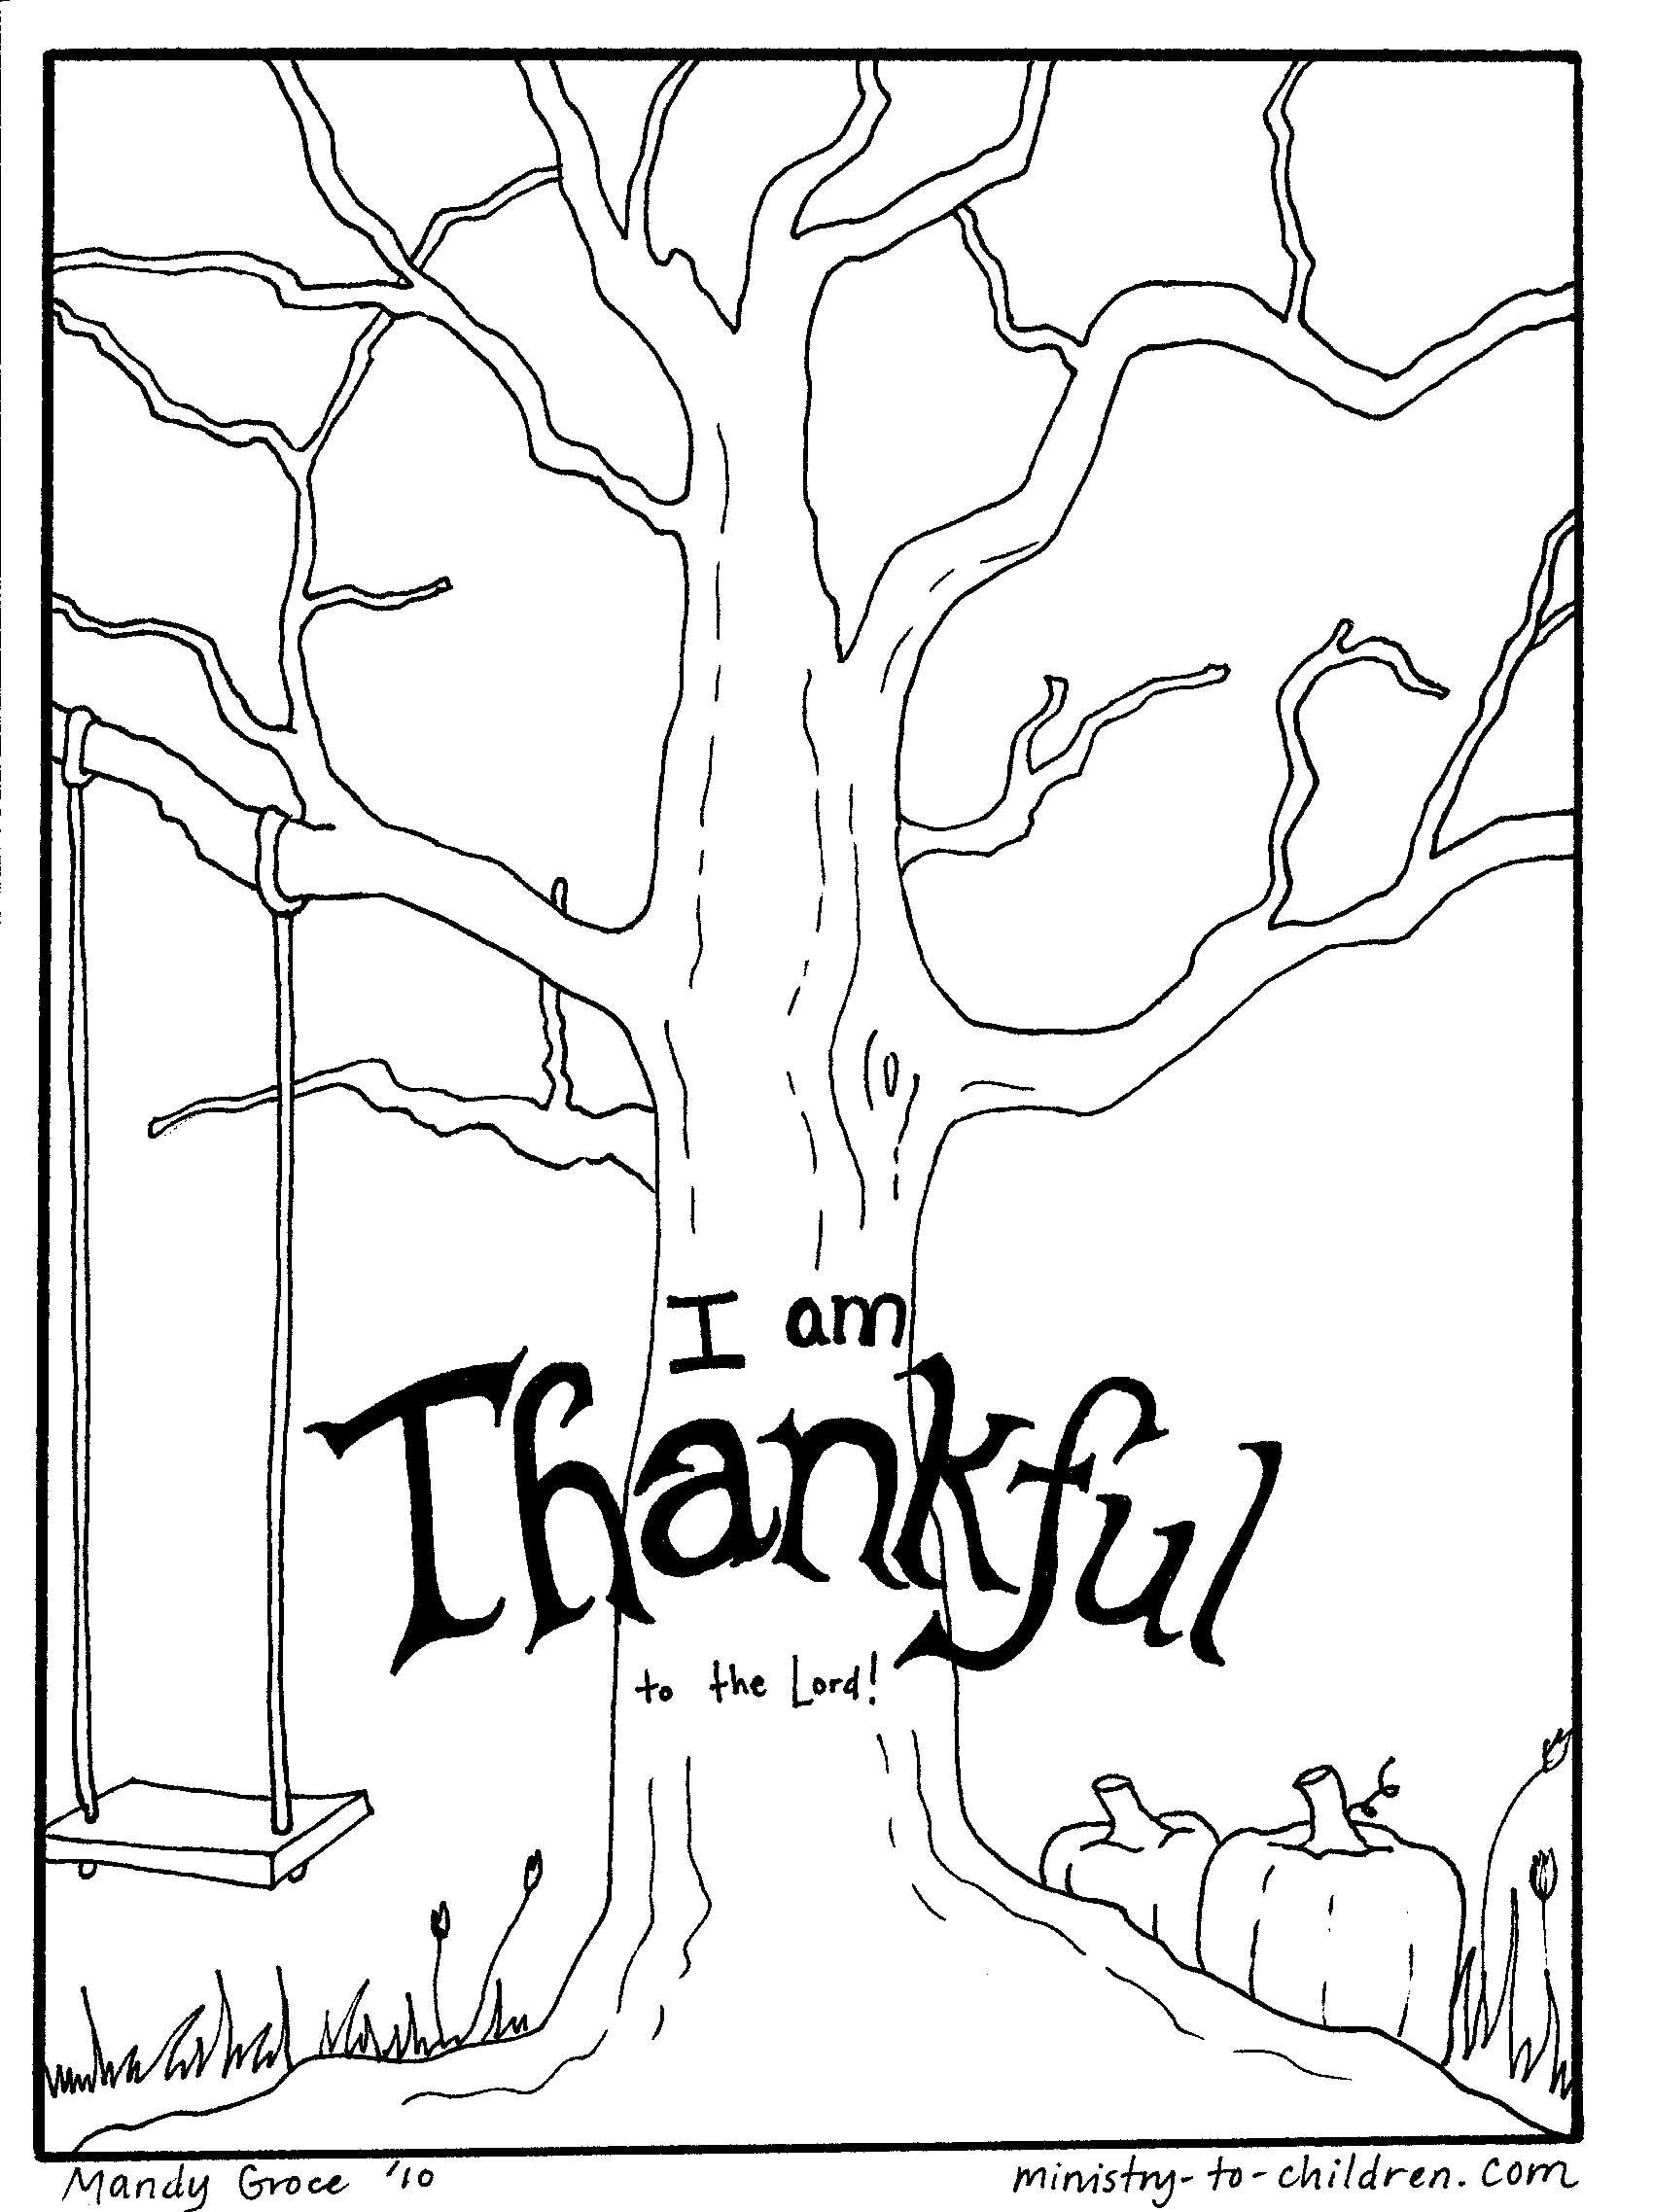 School Coloring Pages Sunday School Coloring Pages For Preschoolers Free Fresh